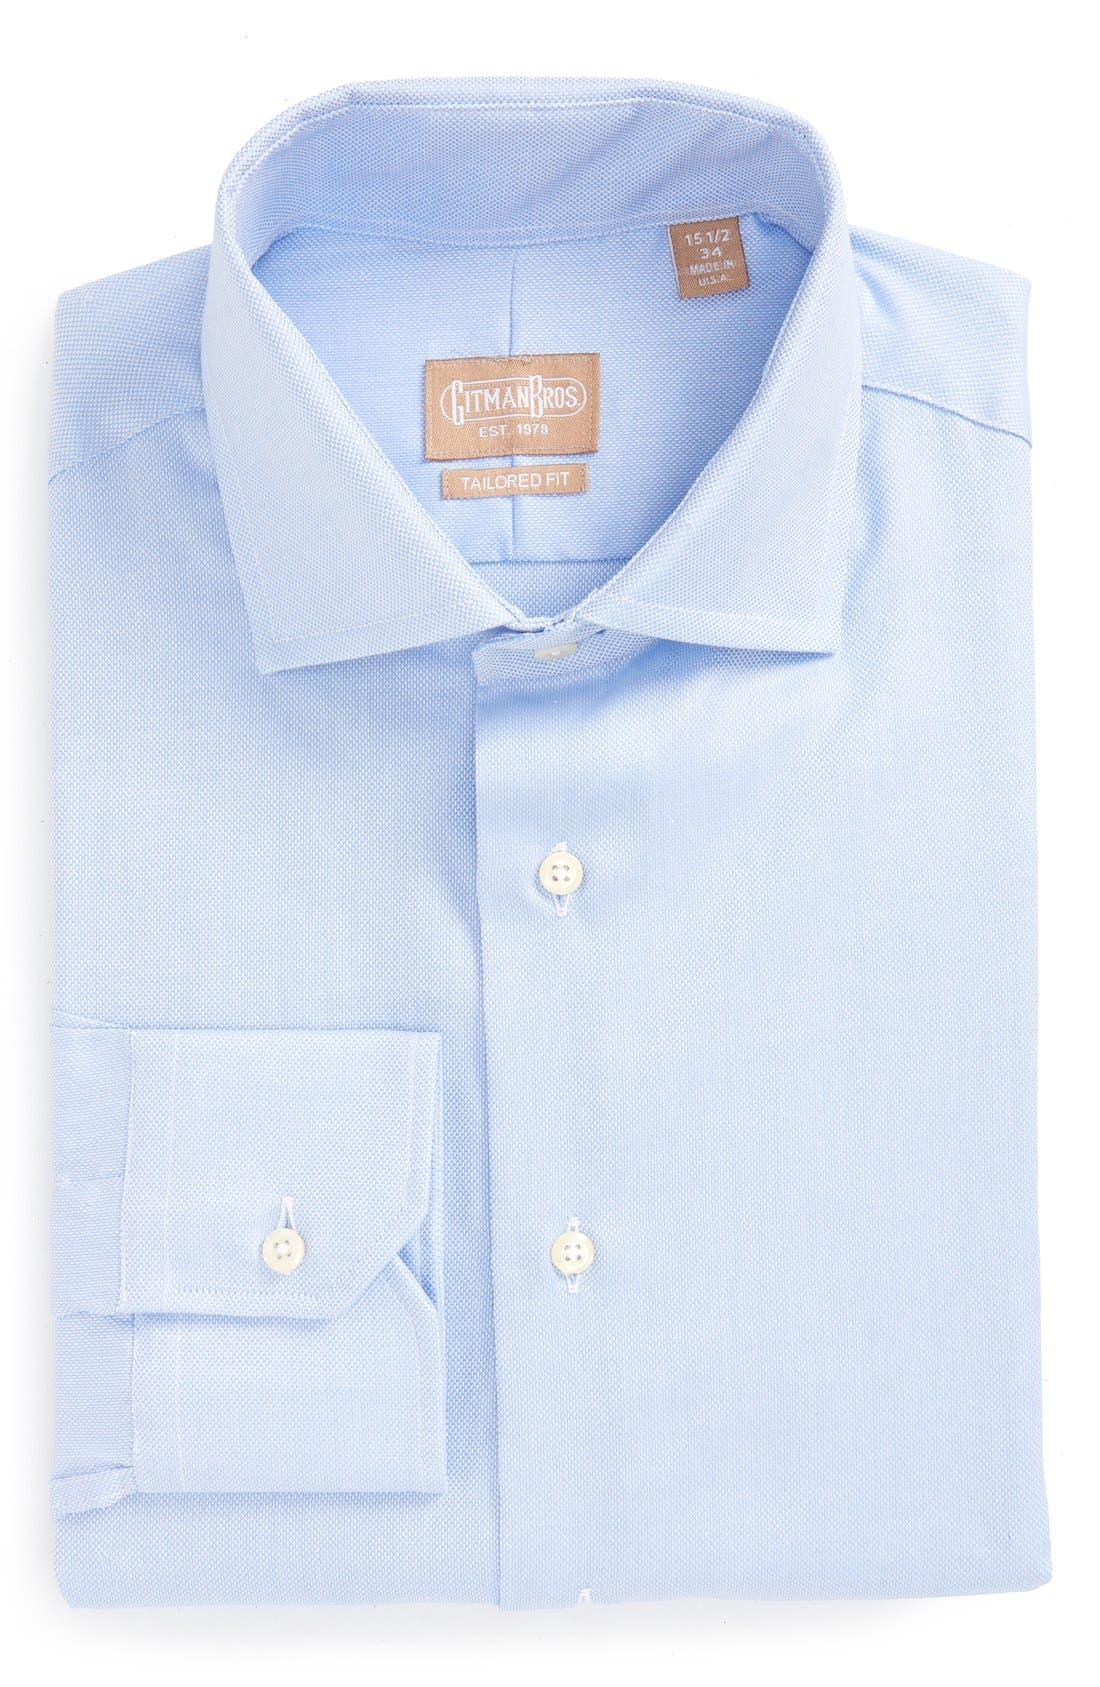 Gitman Royal Oxford Tailored Fit Dress Shirt